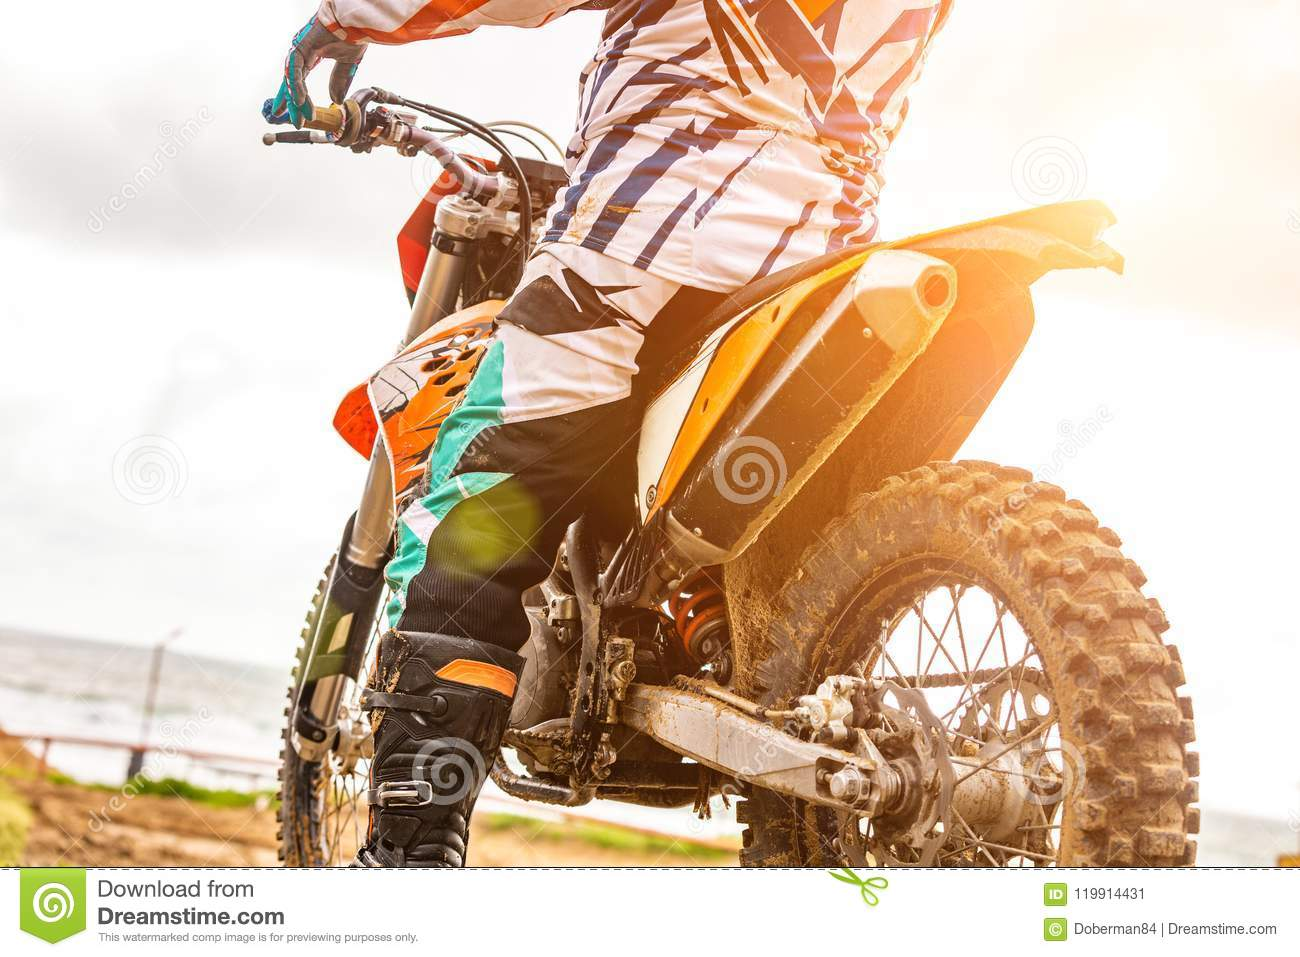 Motorcycle Rider In Mud Riding A Motocross Race High-Res